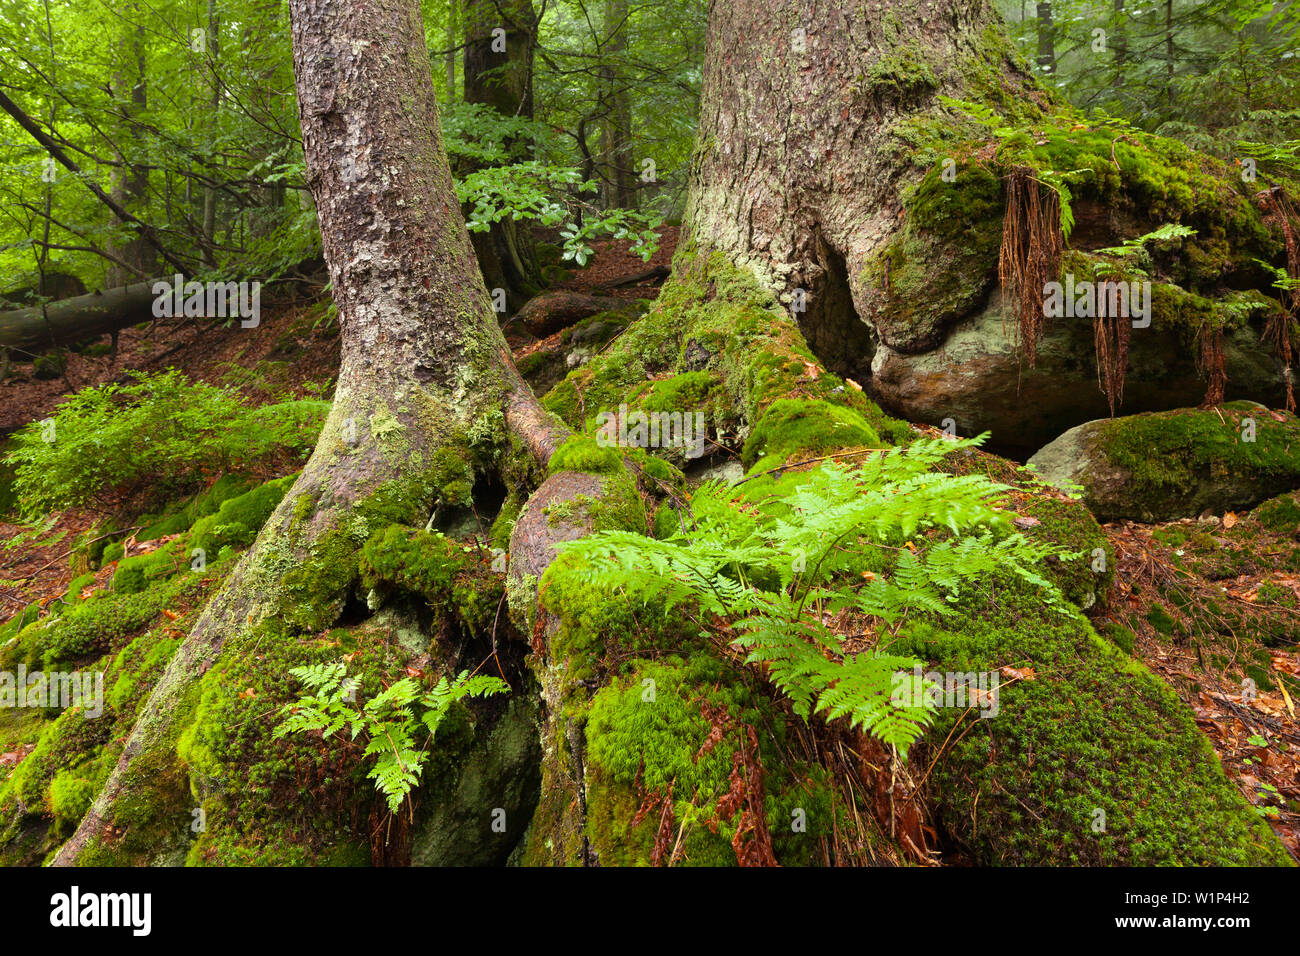 Moss and fern at the roots of a spruce, hiking path to Grosser Falkenstein, Bavarian Forest, Bavaria, Germany - Stock Image